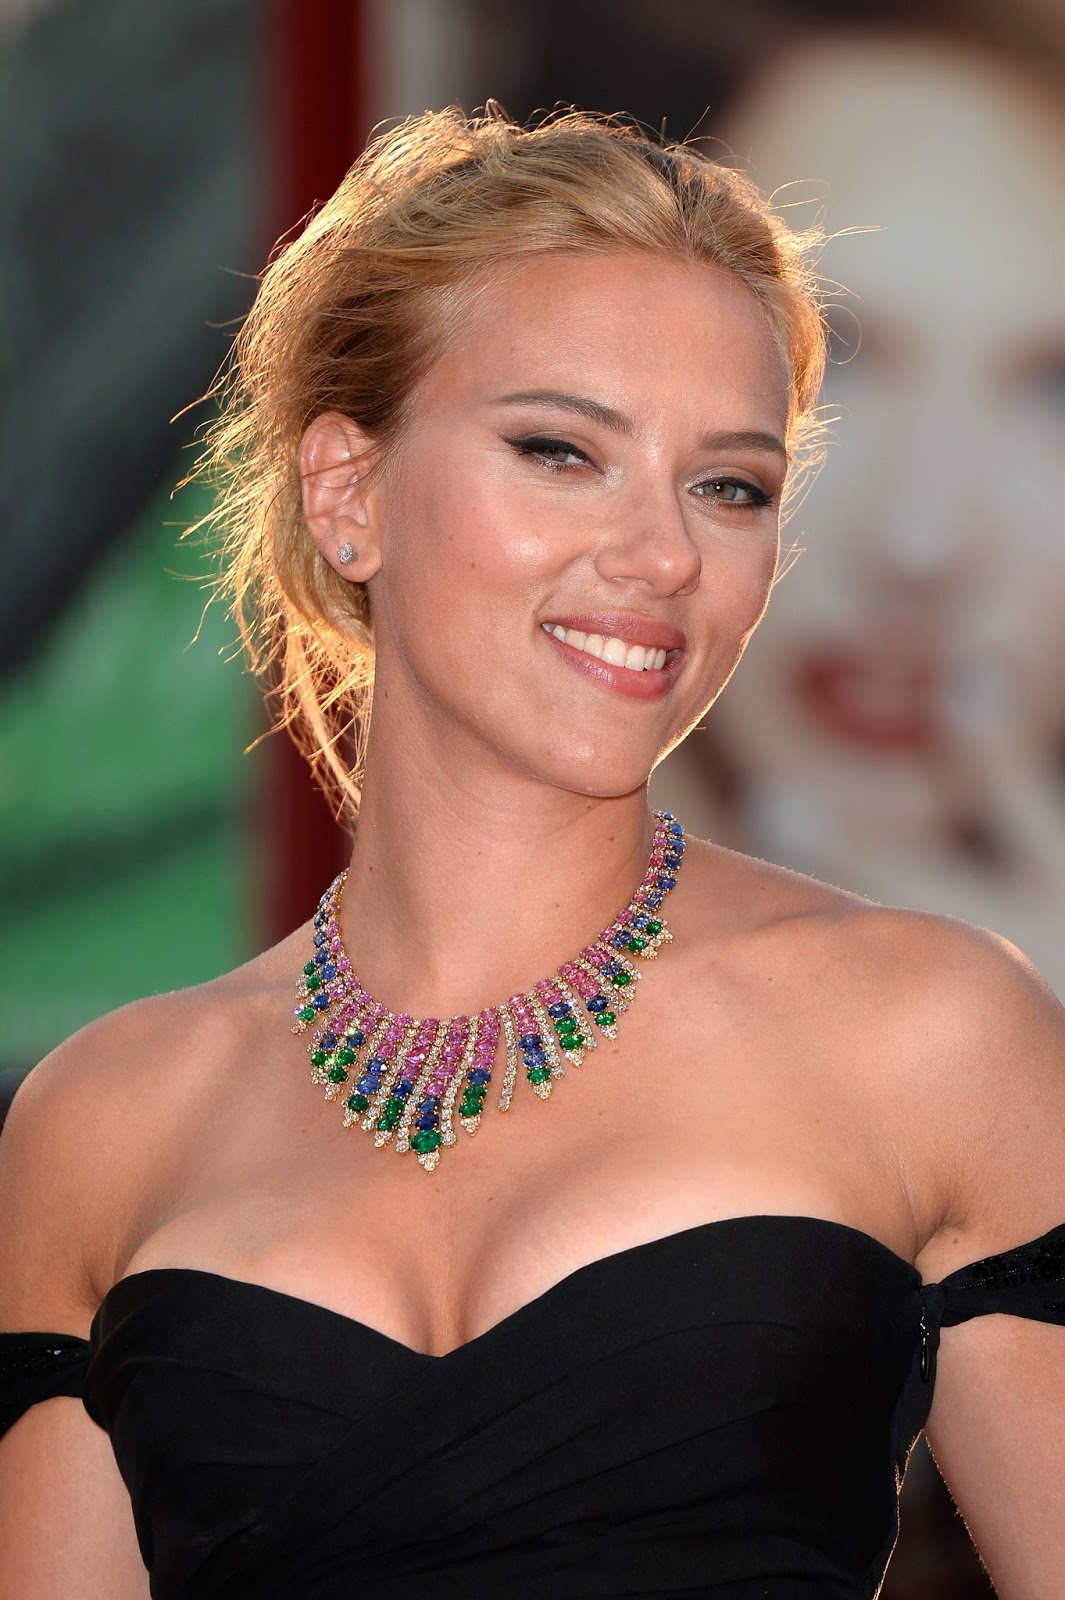 scarlet johanson hot nude movies